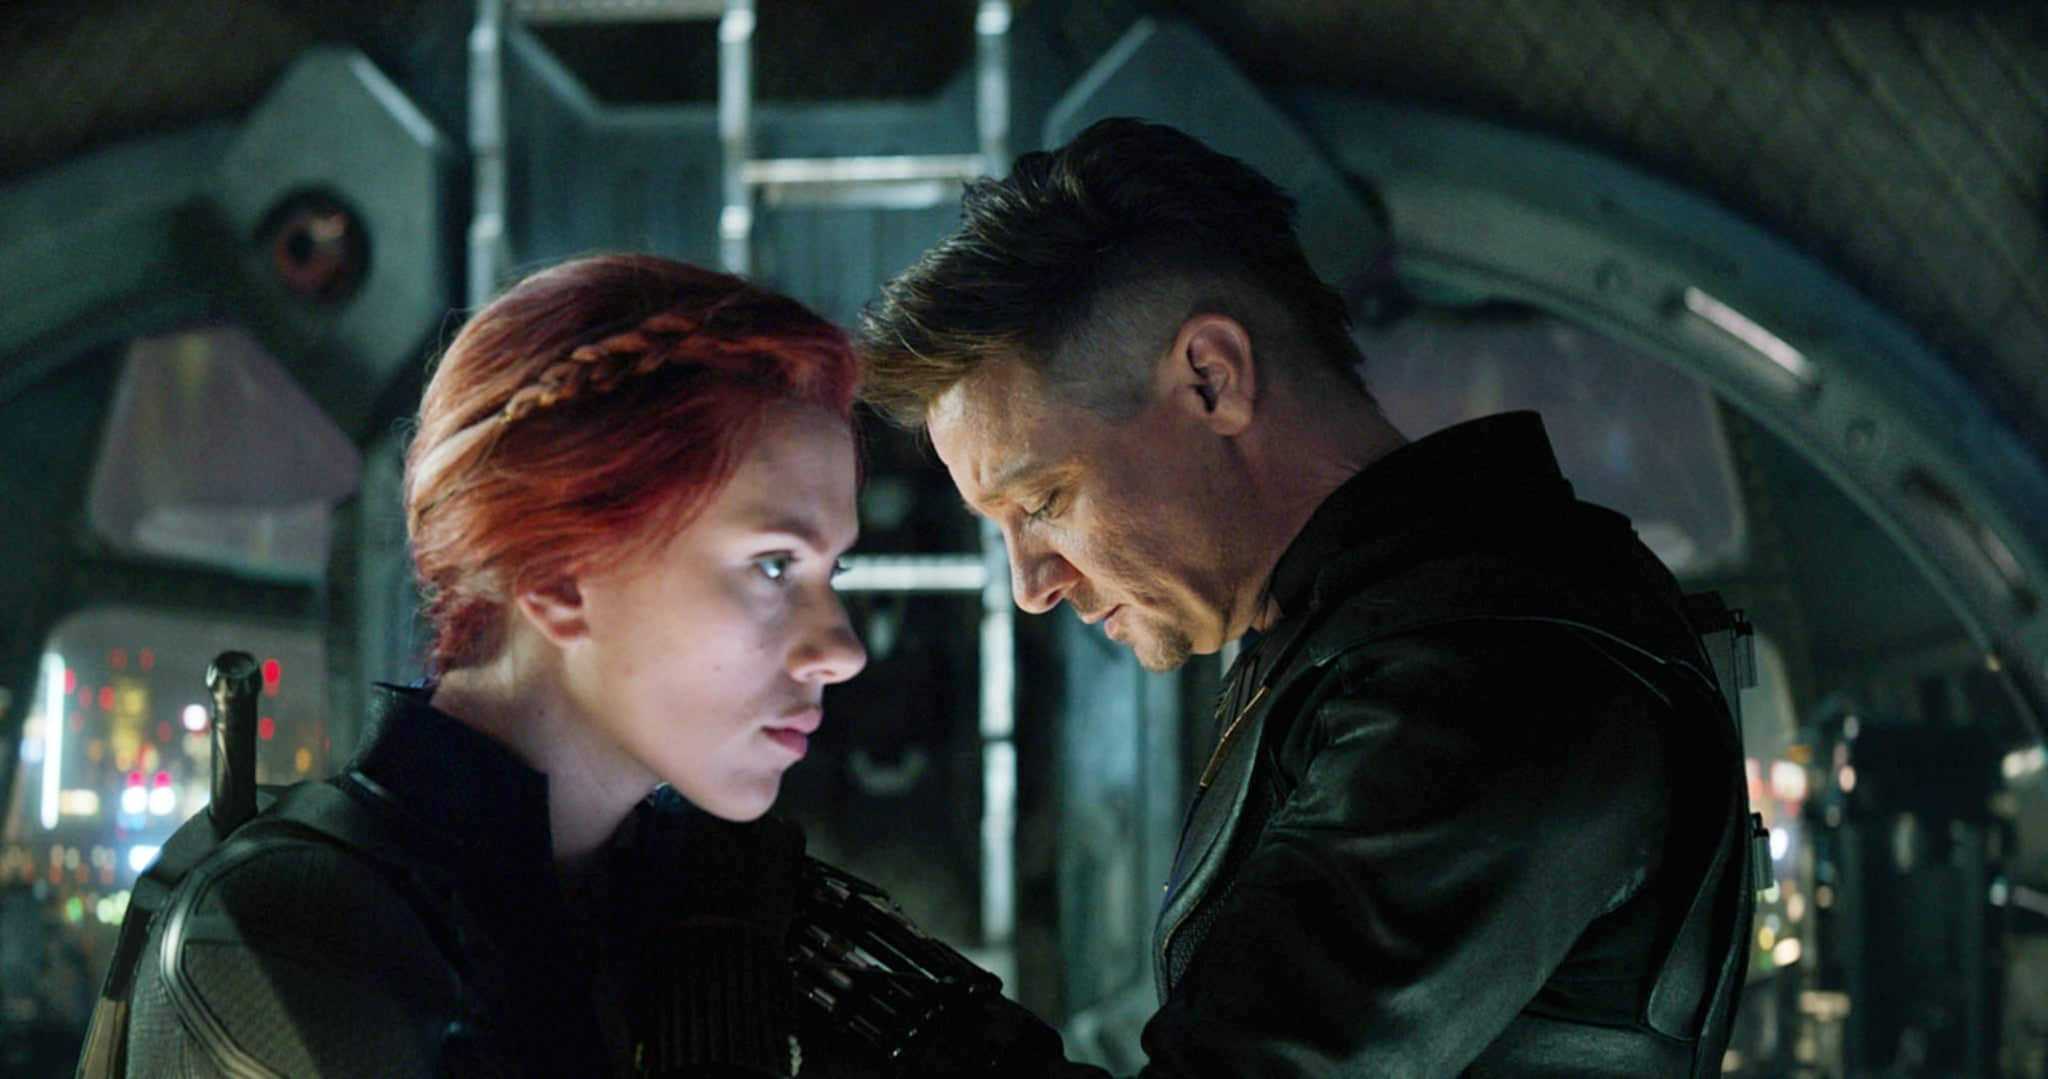 Avengers: Endgame Writers Tells Us Why Black Widow Dies